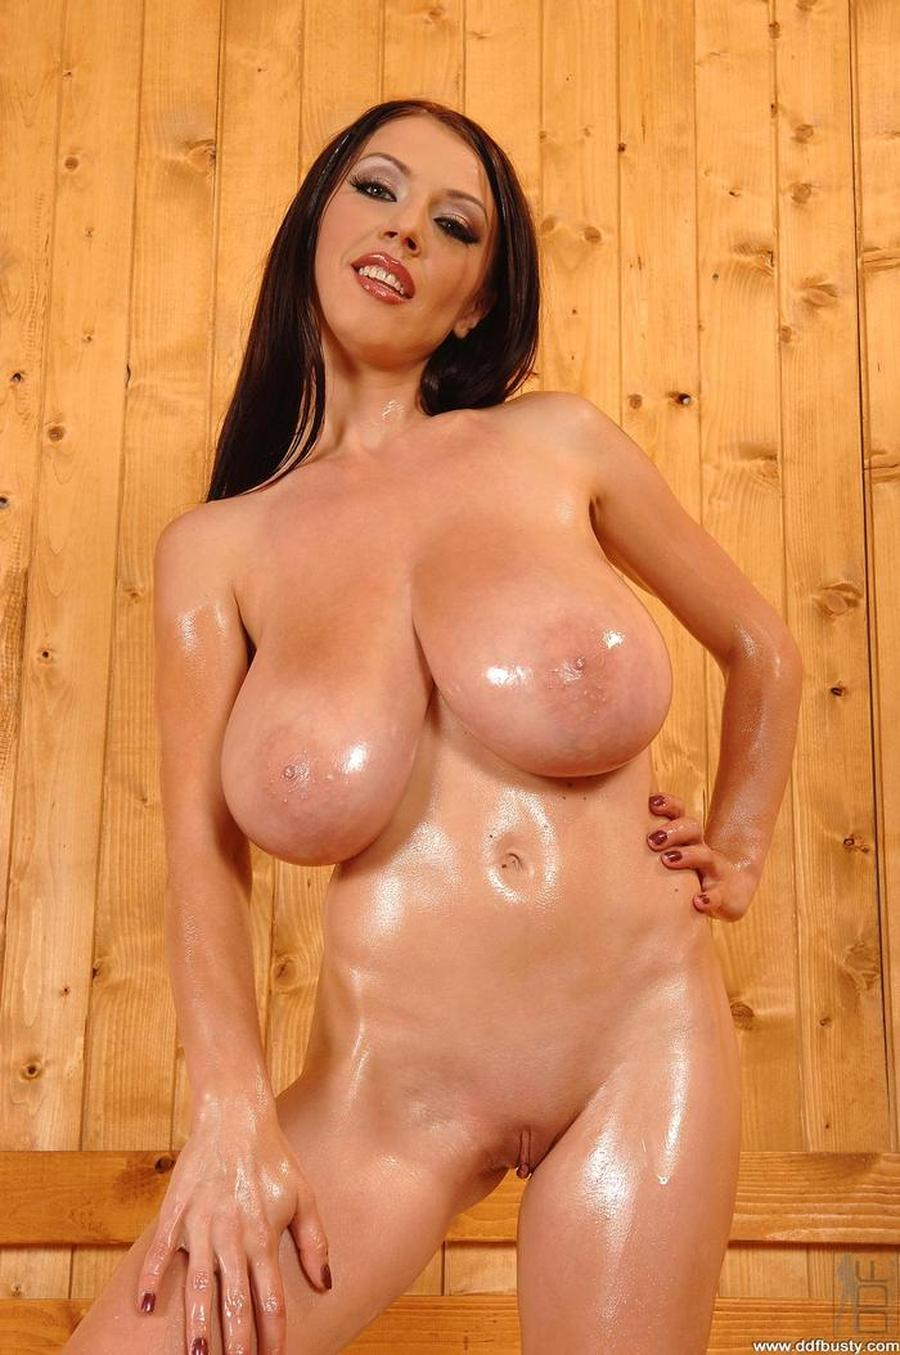 Very erotic! busty freeones merilyn